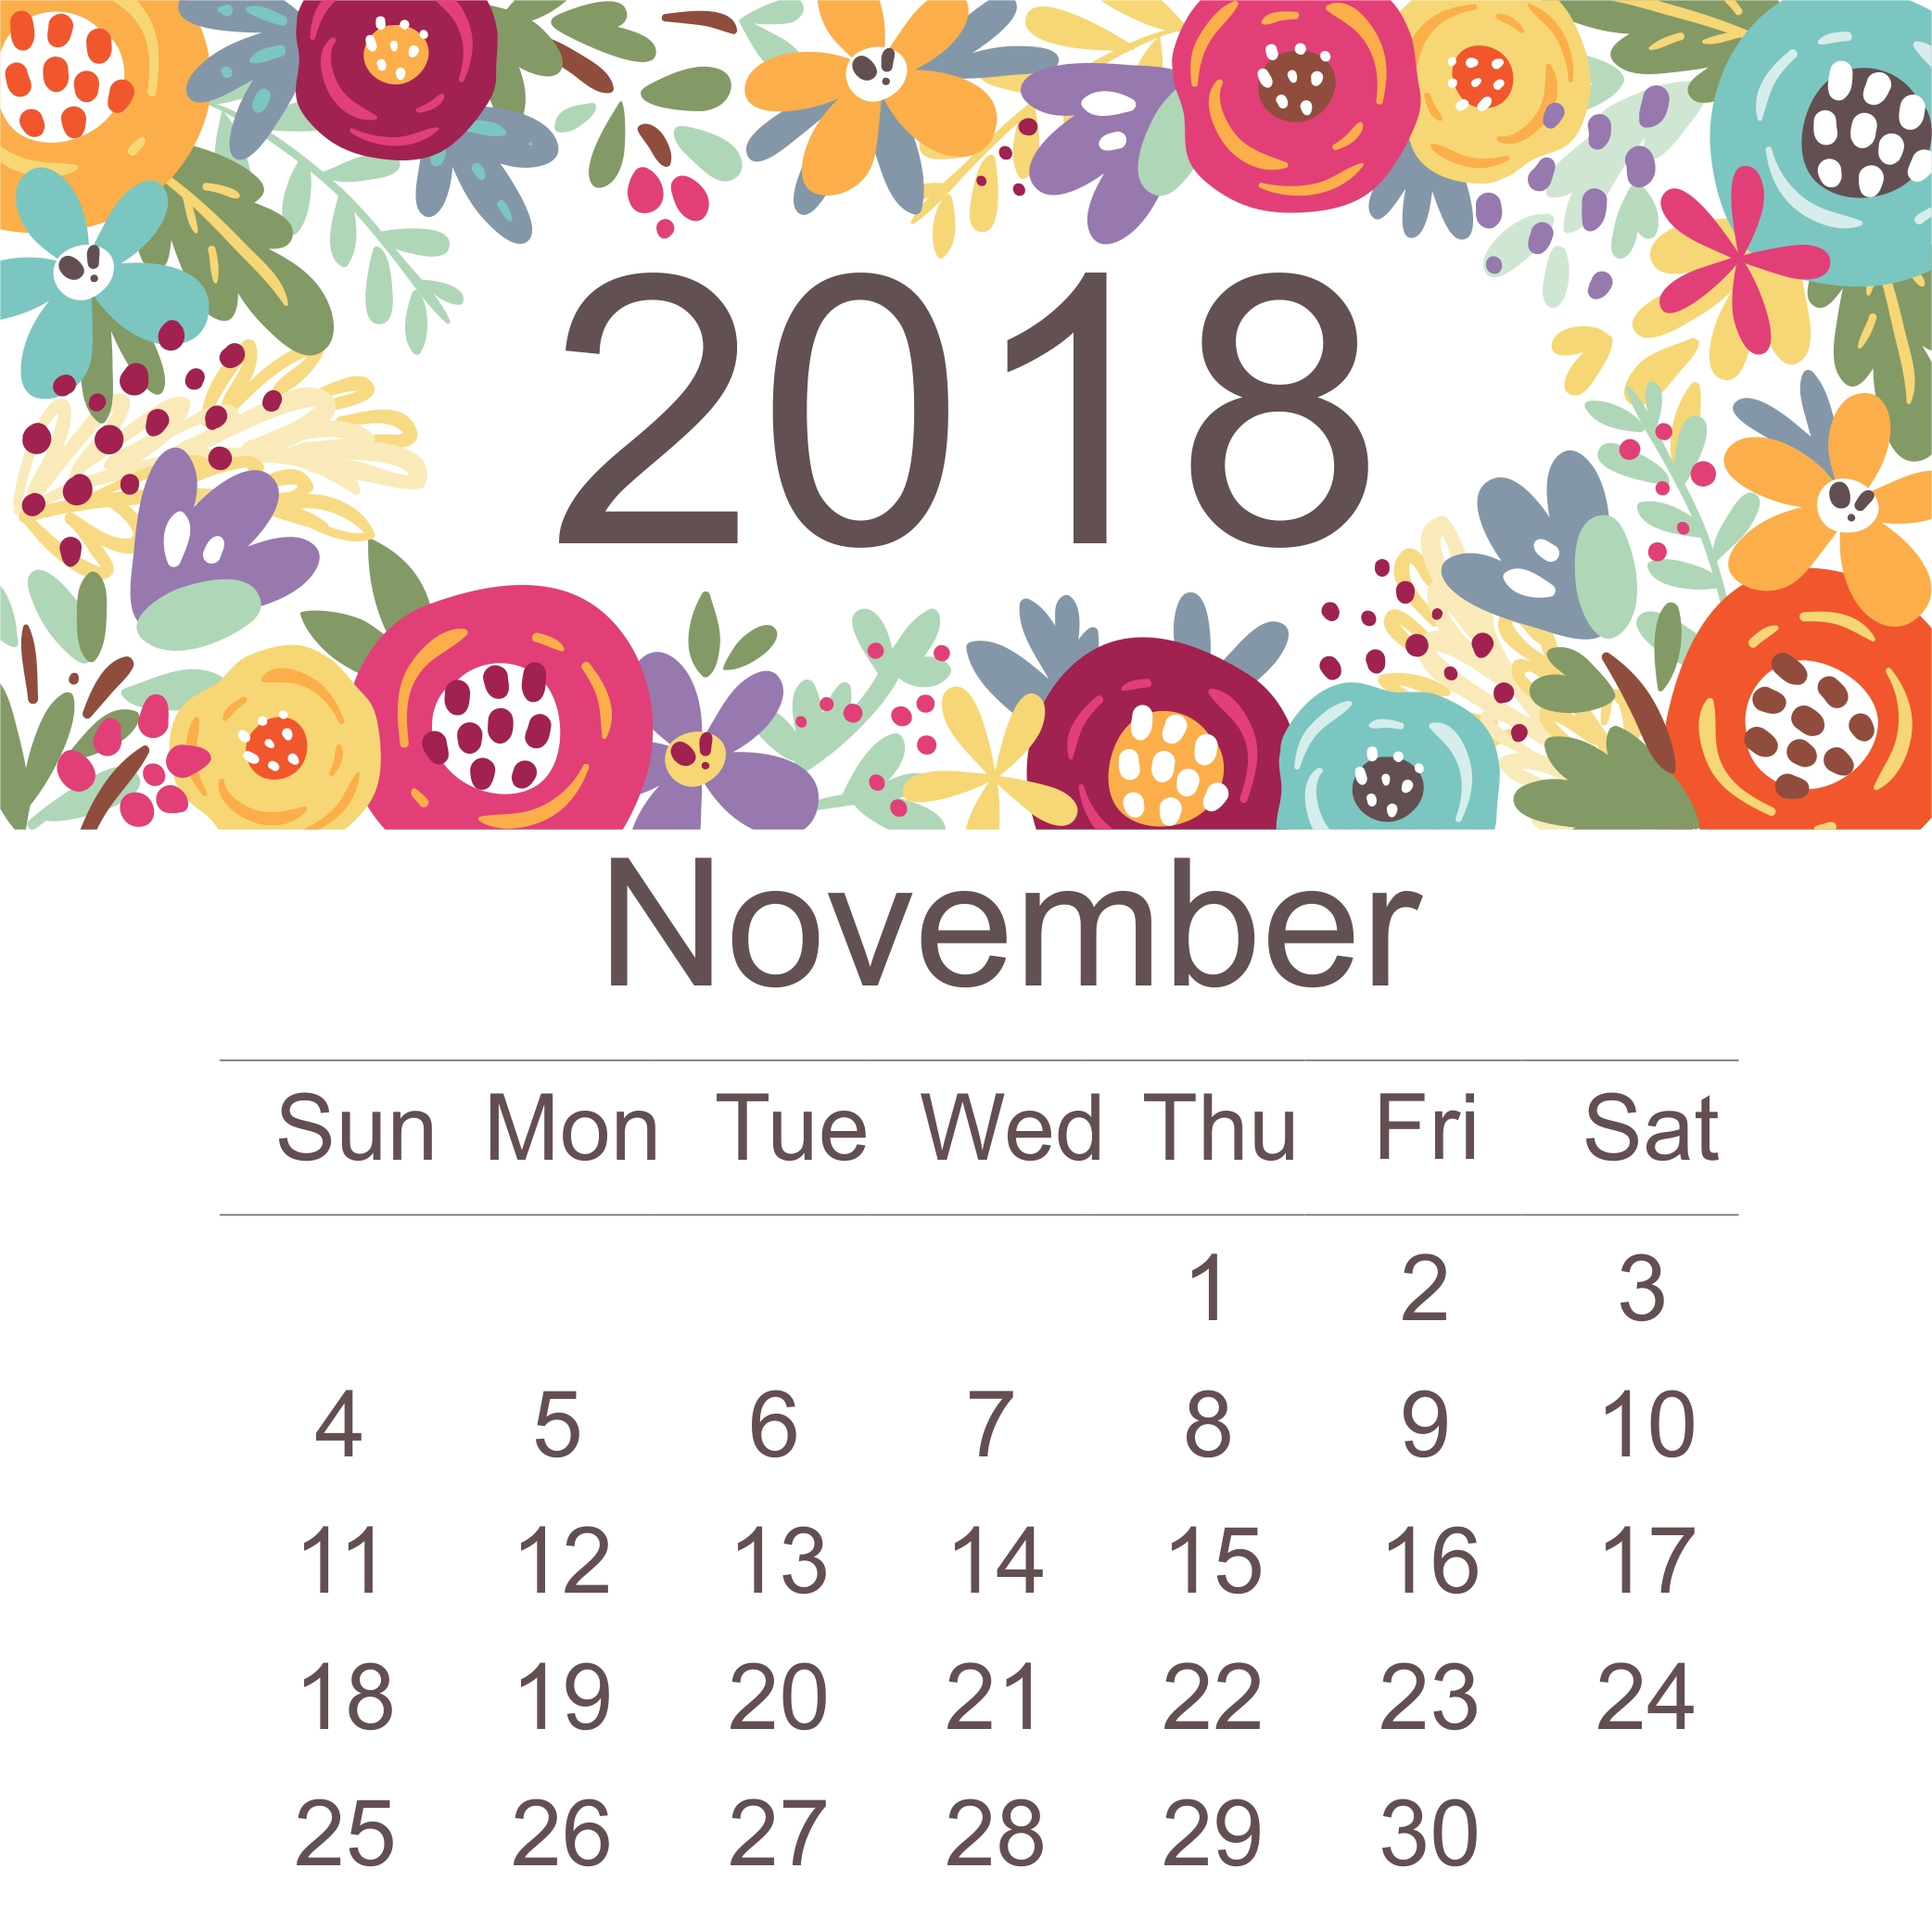 sample of november 2018 calendar template april 2018 calendar::November 2018 Calendar Printable